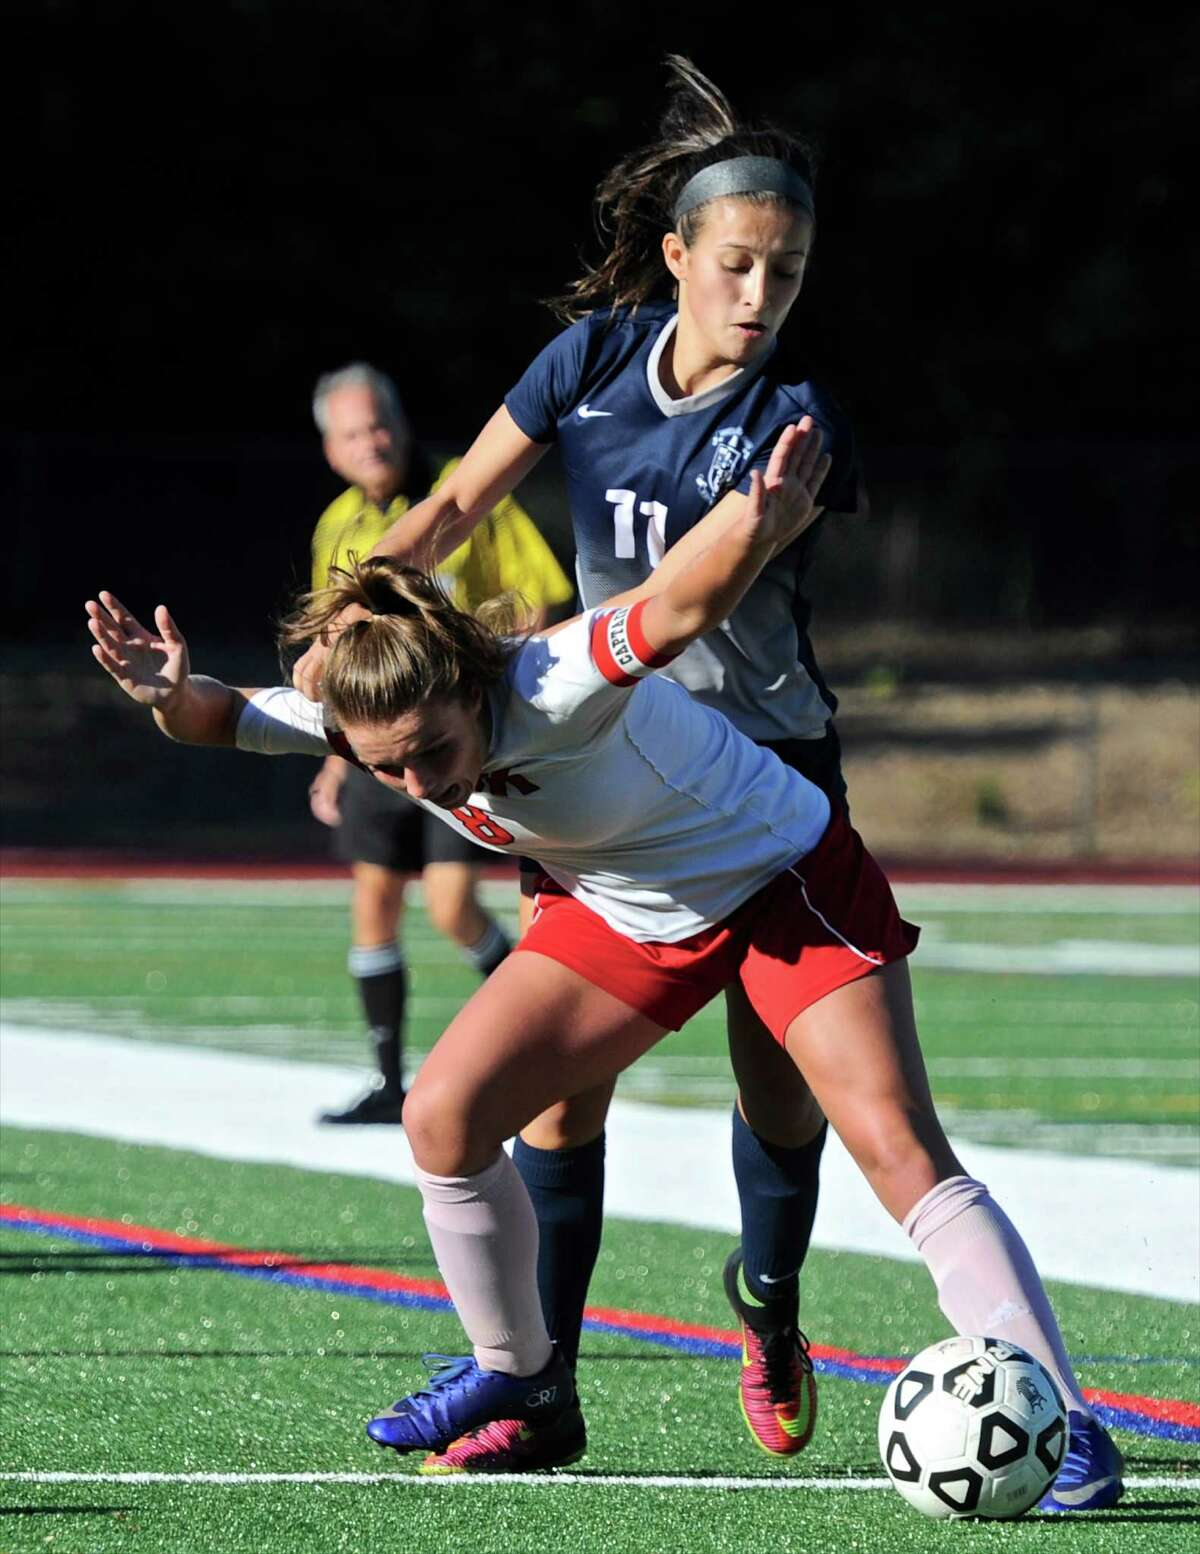 Immaculate's Kayla Mingachos (11) and Masuk's Nikki Bisesi (8) fight for the ball in the SWC girls soccer game between Immaculate and Masuk high schools, on Tuesday afternoon, October 11, 2016, at Masuk High School, in Monroe, Conn.